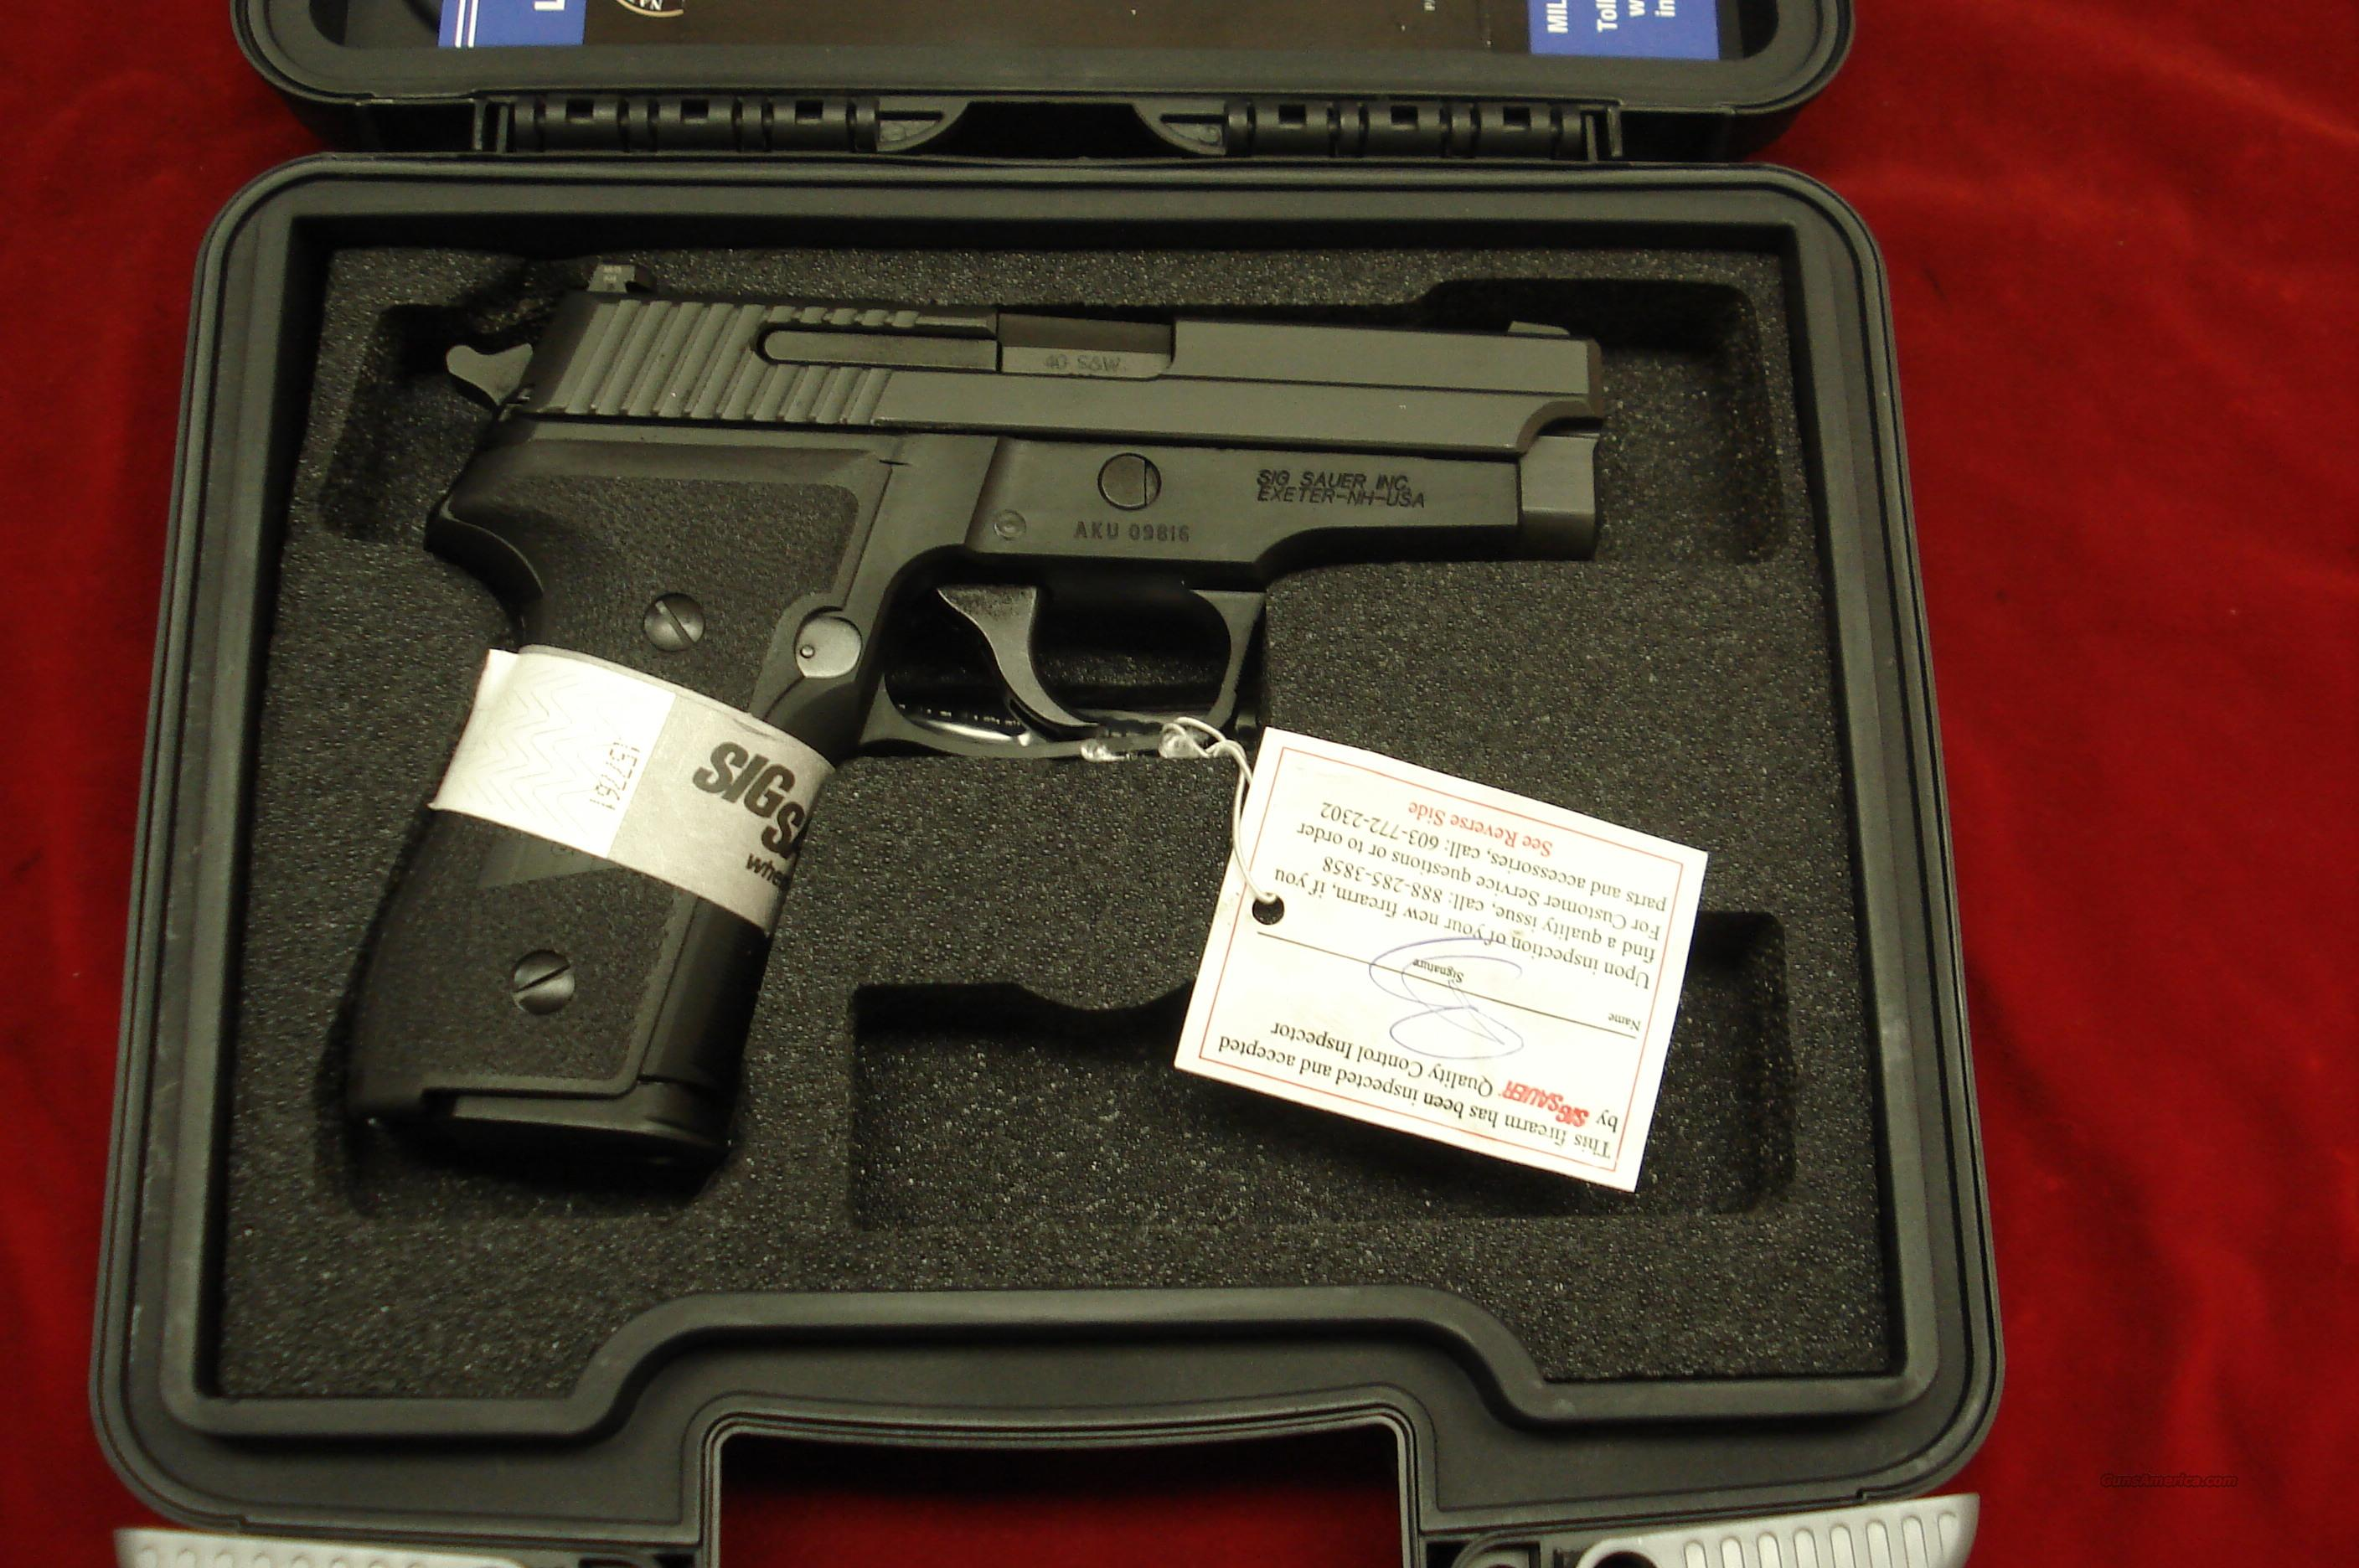 SIG SAUER P229 .40CAL WITH NIGHT SIGHTS NEW   Guns > Pistols > Sig - Sauer/Sigarms Pistols > P229